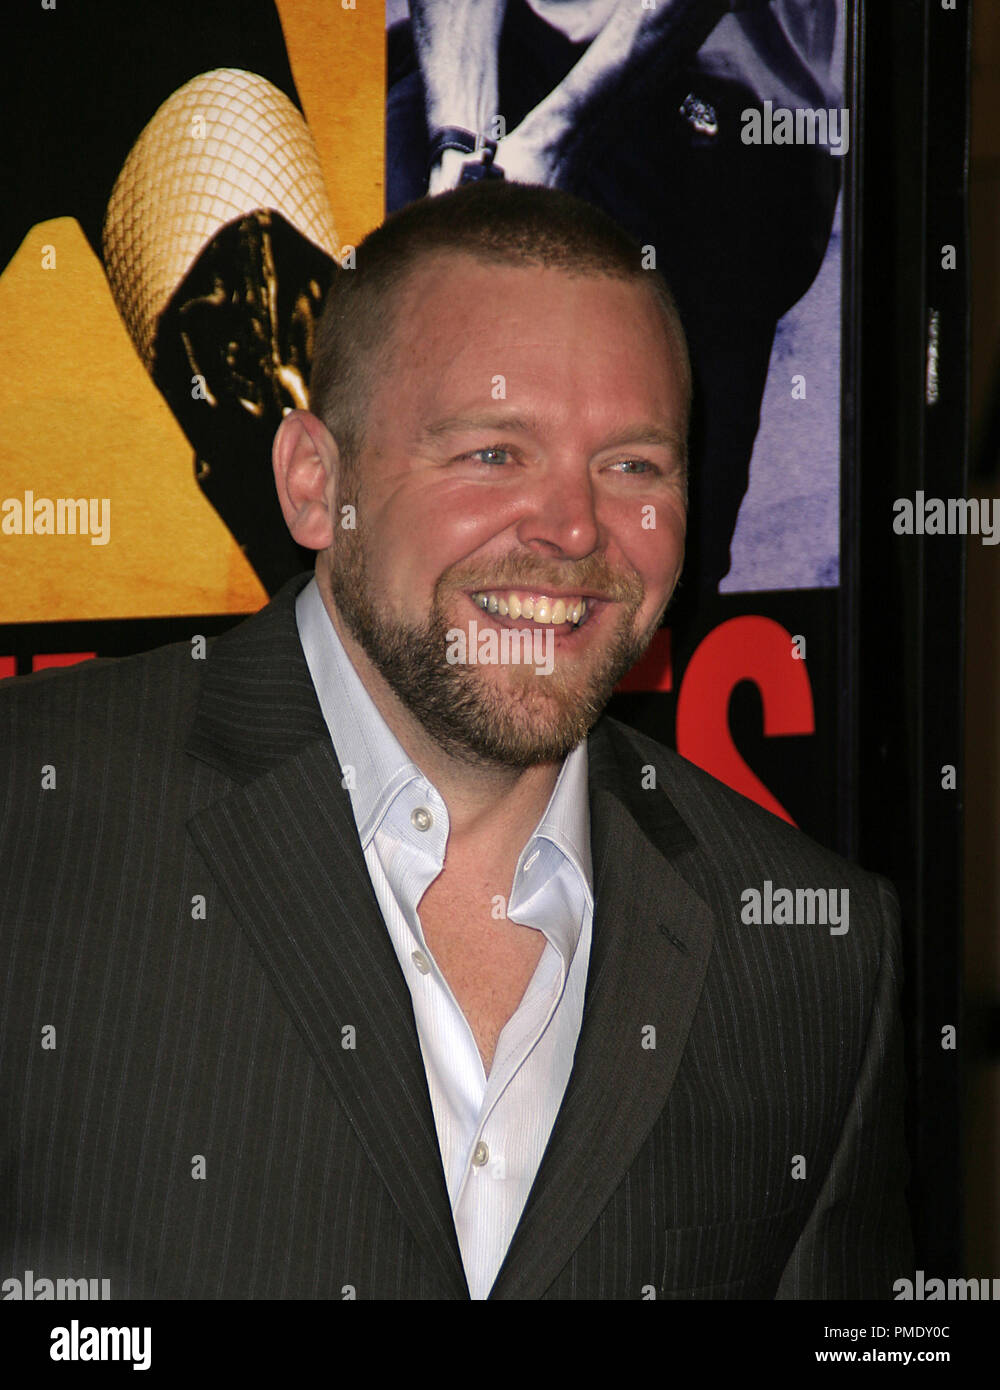 'Smokin' Aces' (Premiere) Joe Carnahan 1-18-2007 / Grauman's Chinese Theater / Hollywood, CA / Universal Pictures / Photo by Joseph Martinez - All Rights Reserved  File Reference # 22905_0019PLX  For Editorial Use Only - - Stock Image